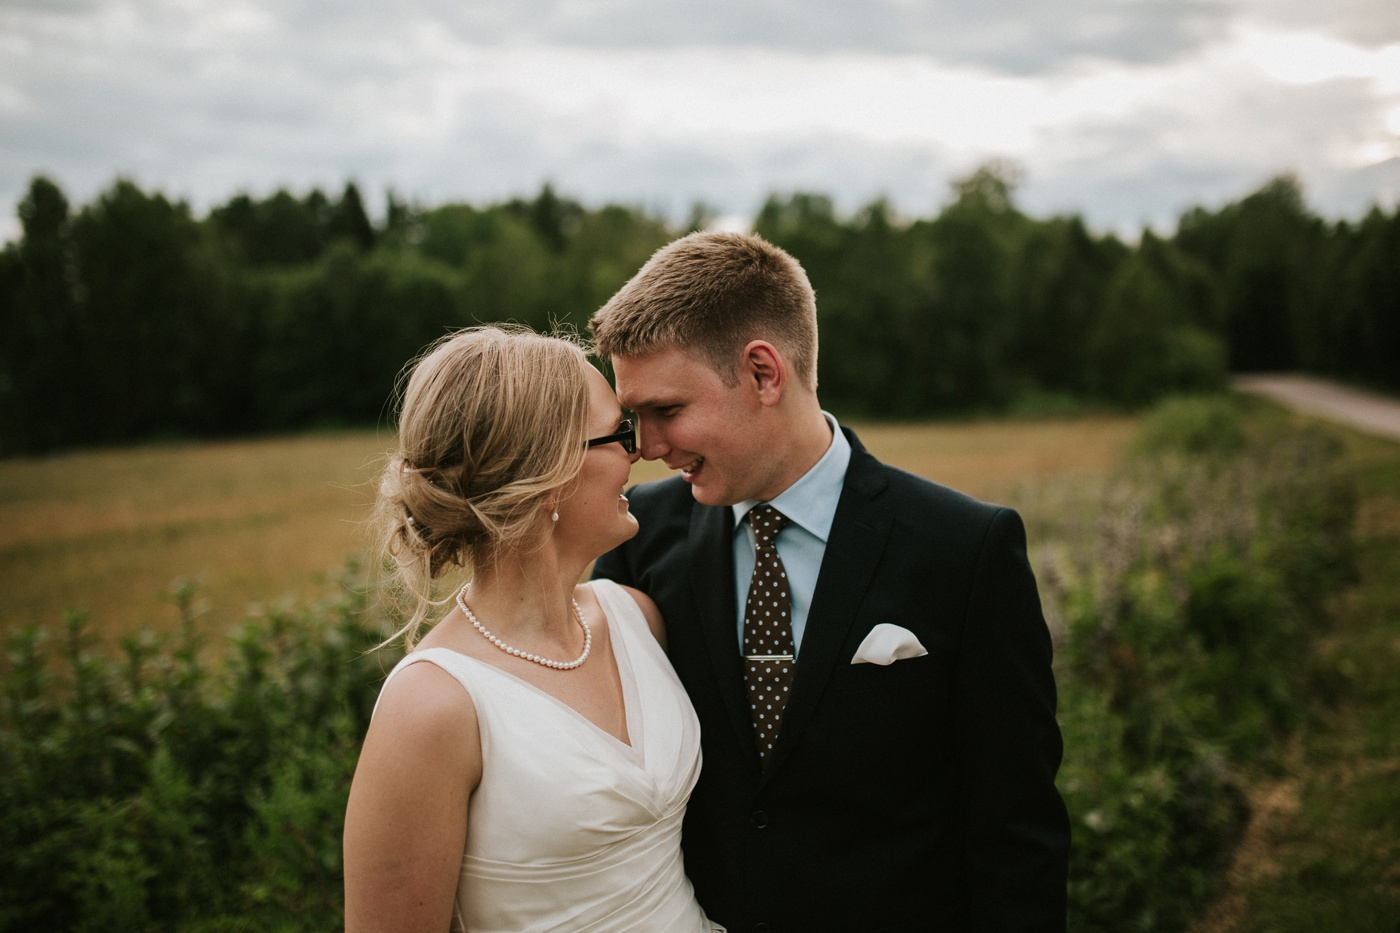 ceciliajoakim_sweden-countryside-summer-wedding_melbourne-fun-quirky-wedding-photography_90